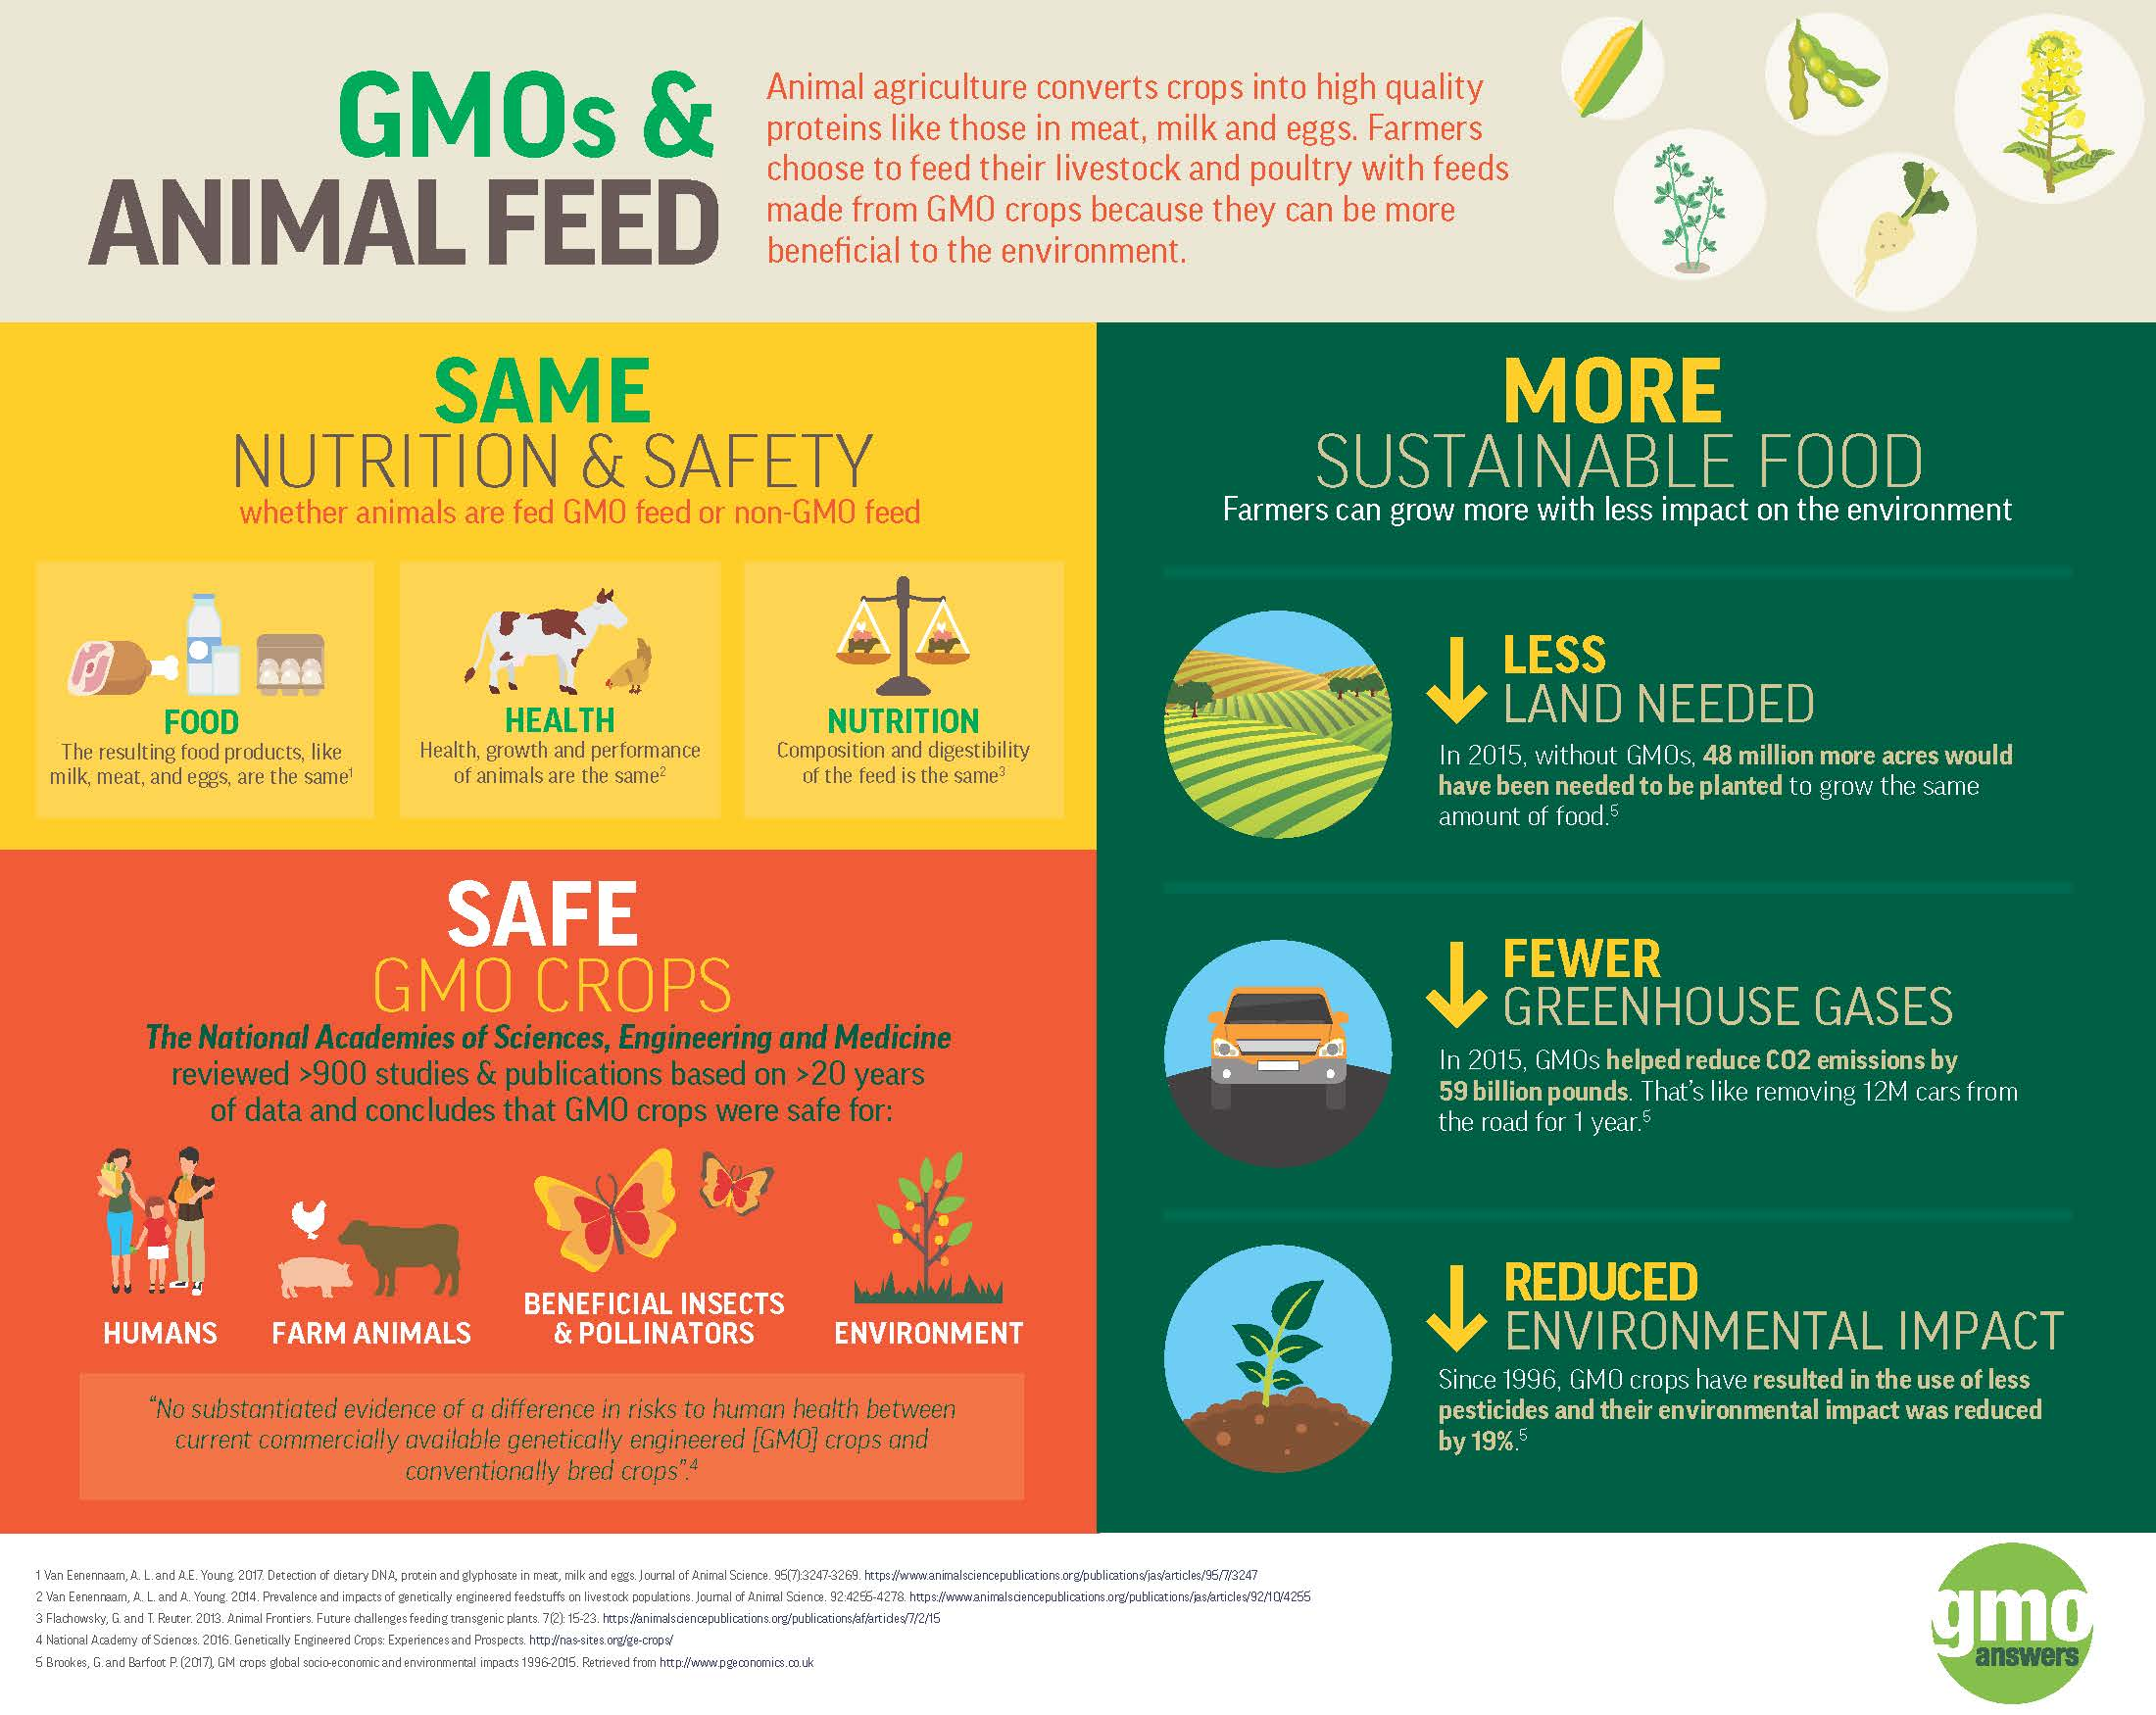 GM Crops_Animal Feed_Infographic_5